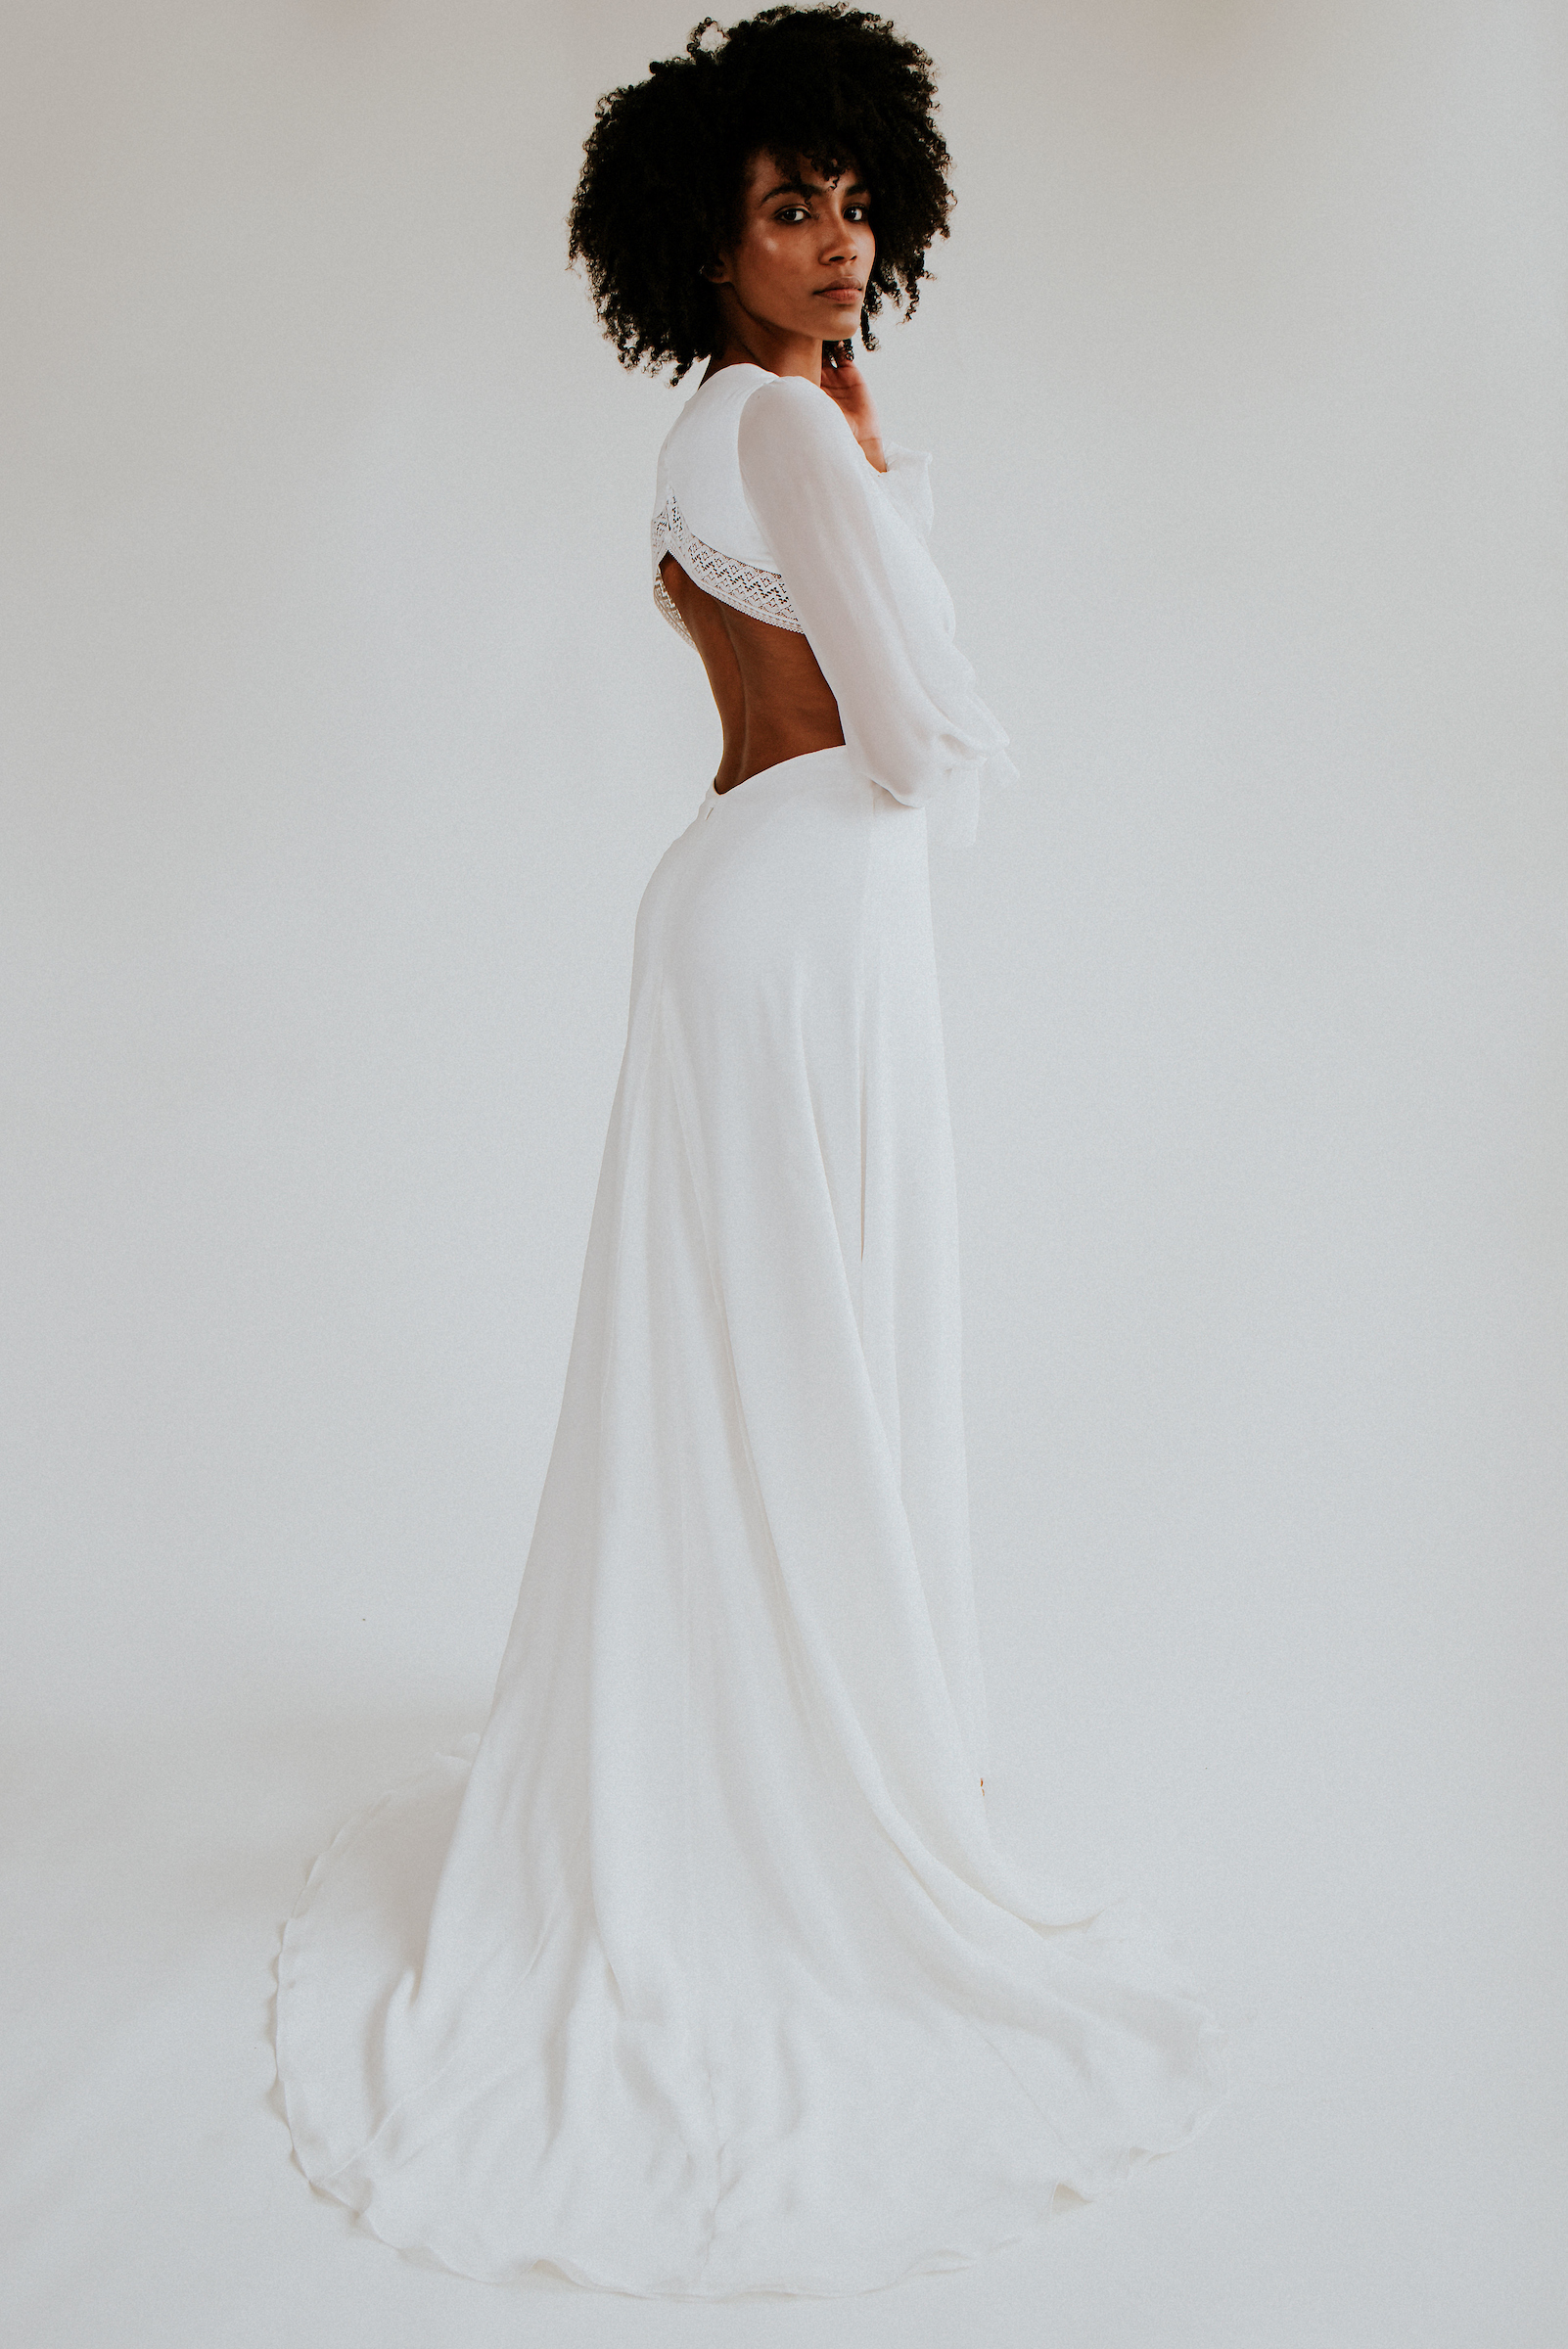 cool boho wedding dresses for the eco conscious bride by Rolling in roses